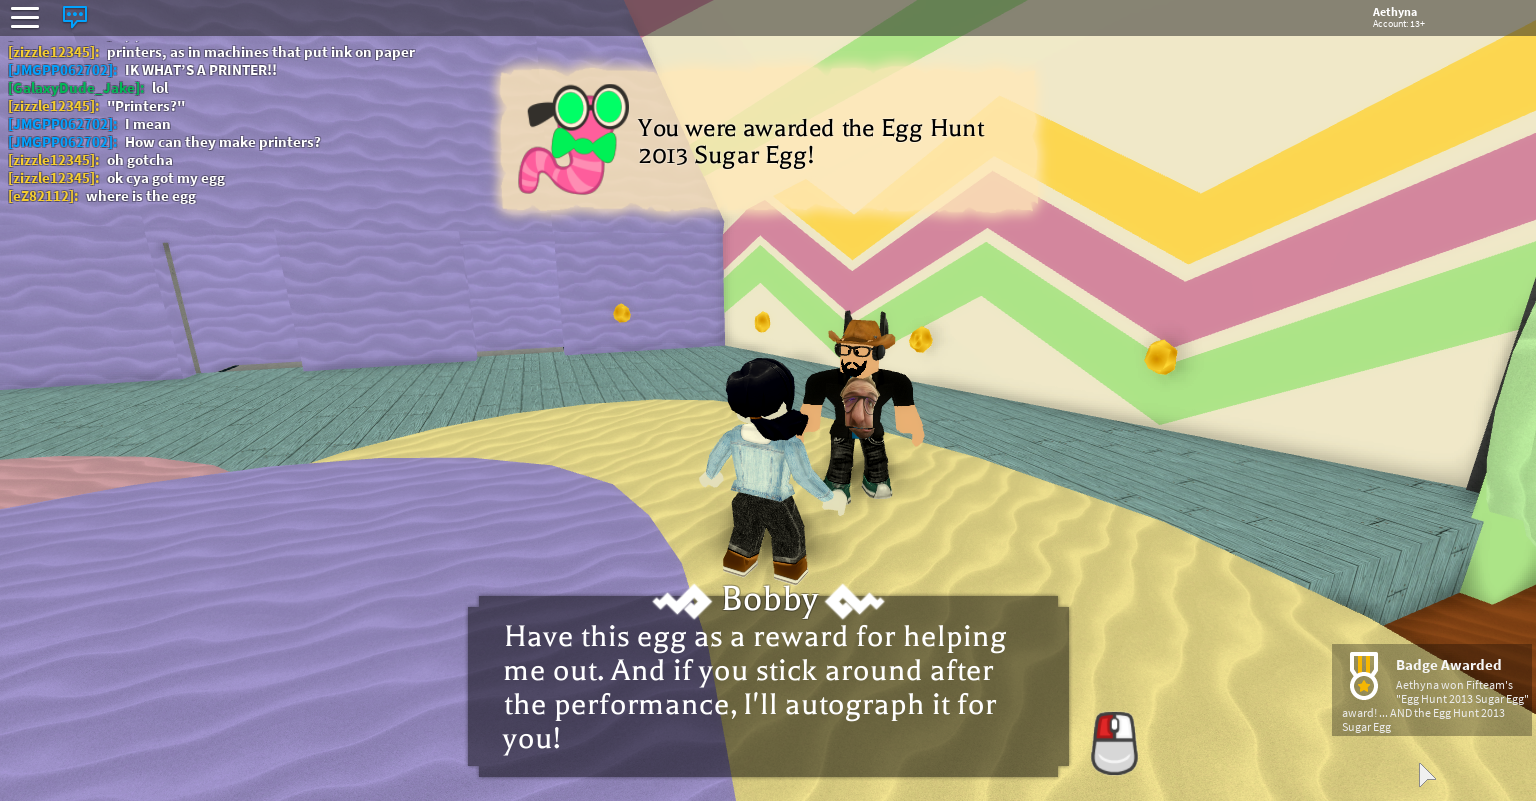 Aveyns Blog Roblox Egg Hunt 2018 How To Find The Egg Hunt - how to get all eggs in roblox egg hunt 2018 the great yolktales